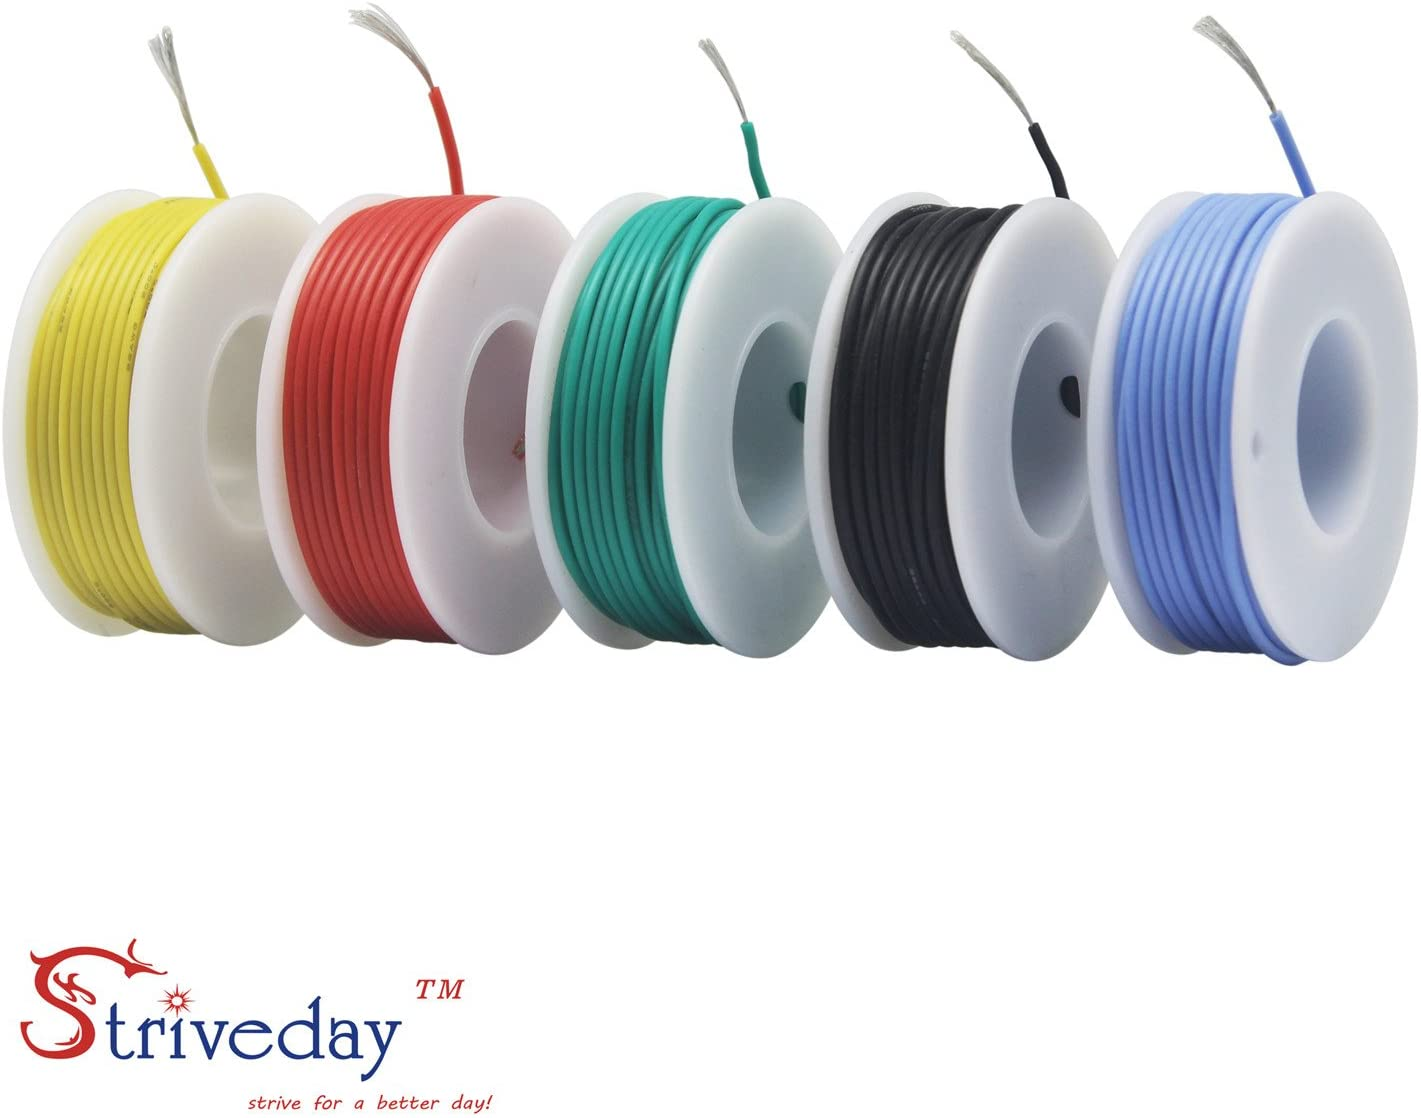 Striveday 30 AWG Flexible Silicone Wire Electric wire 30 gauge Coper Hook Up Wire 300V Cables electronic stranded wire cable electrics DIY BOX-1 - -